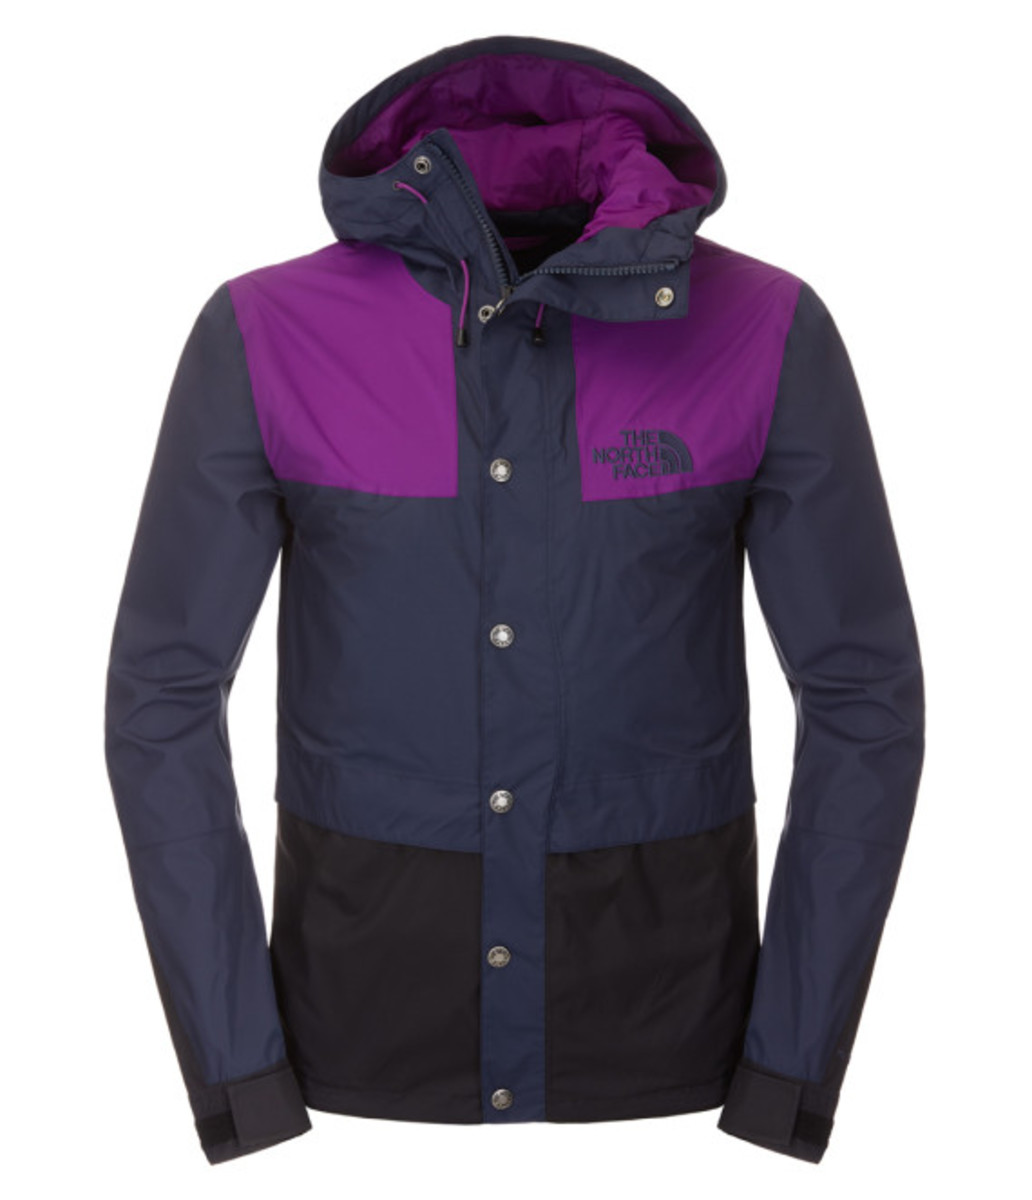 the-north-face-mountain-jacket-18